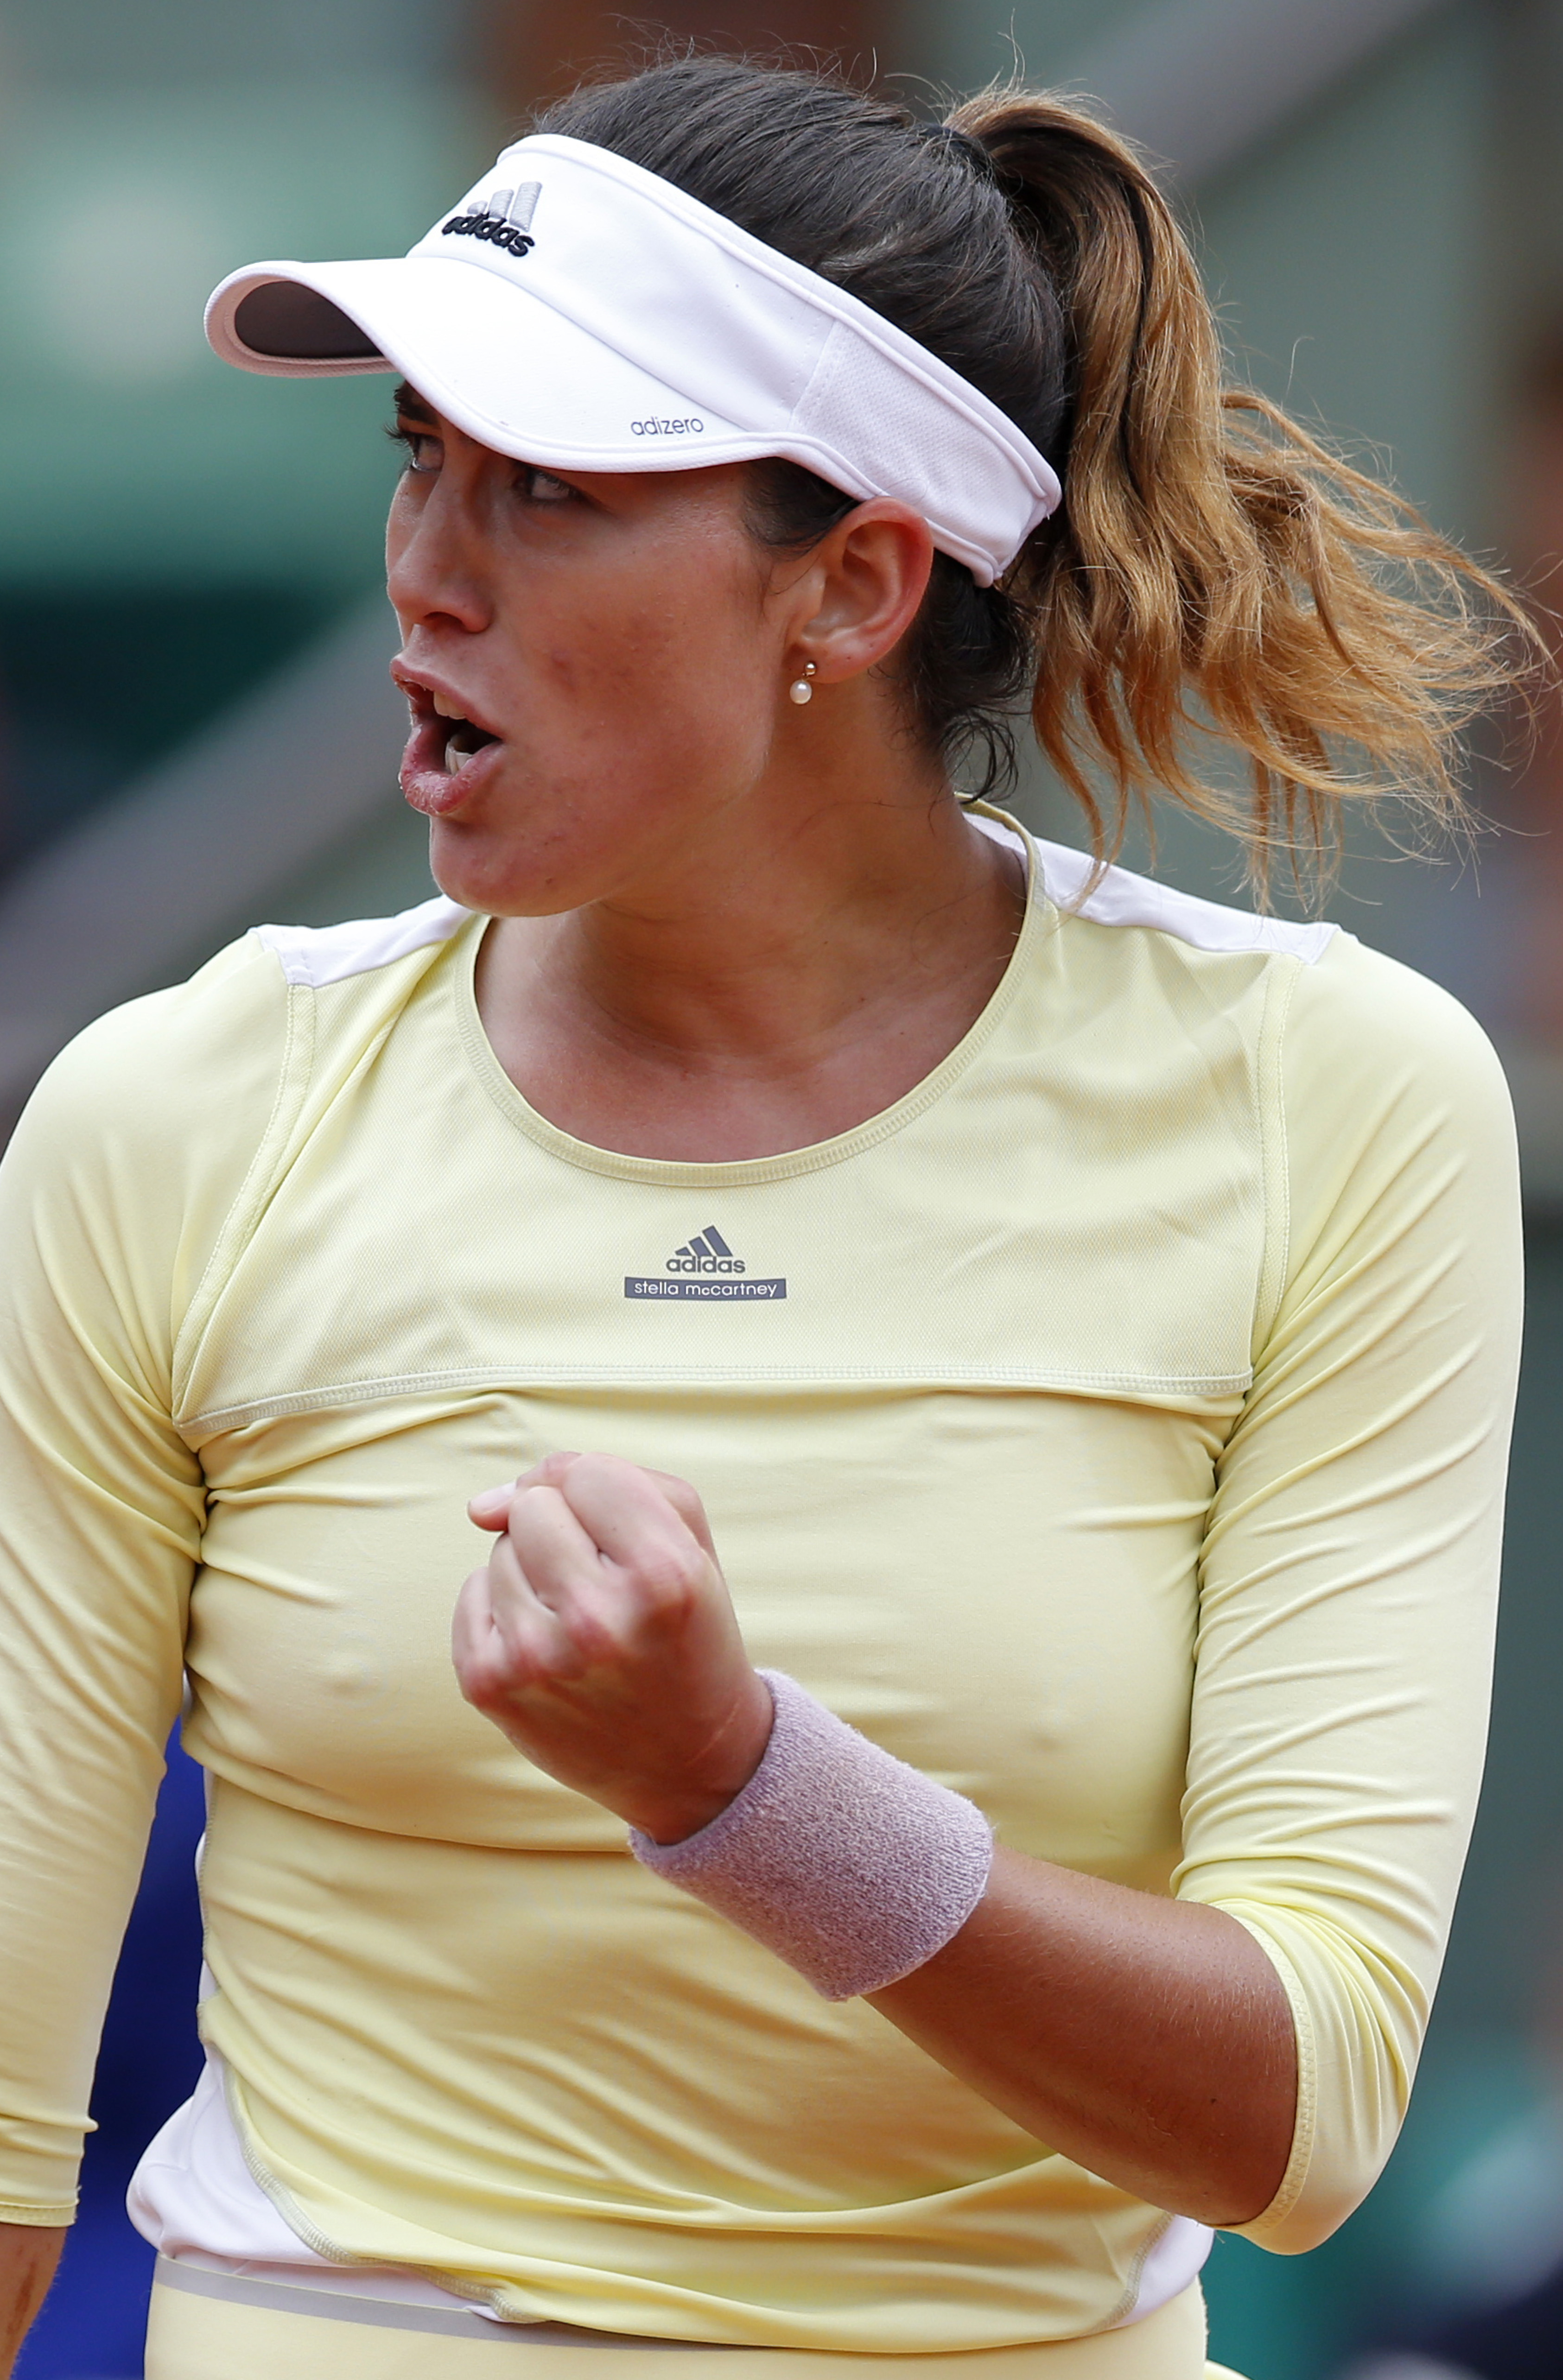 Spain's Garbine Muguruza clenches her fist as she plays Russia's Svetlana Kuznetsova during their fourth round match of the French Open tennis tournament at the Roland Garros stadium, Sunday, May 29, 2016 in Paris.  (AP Photo/Alastair Grant)